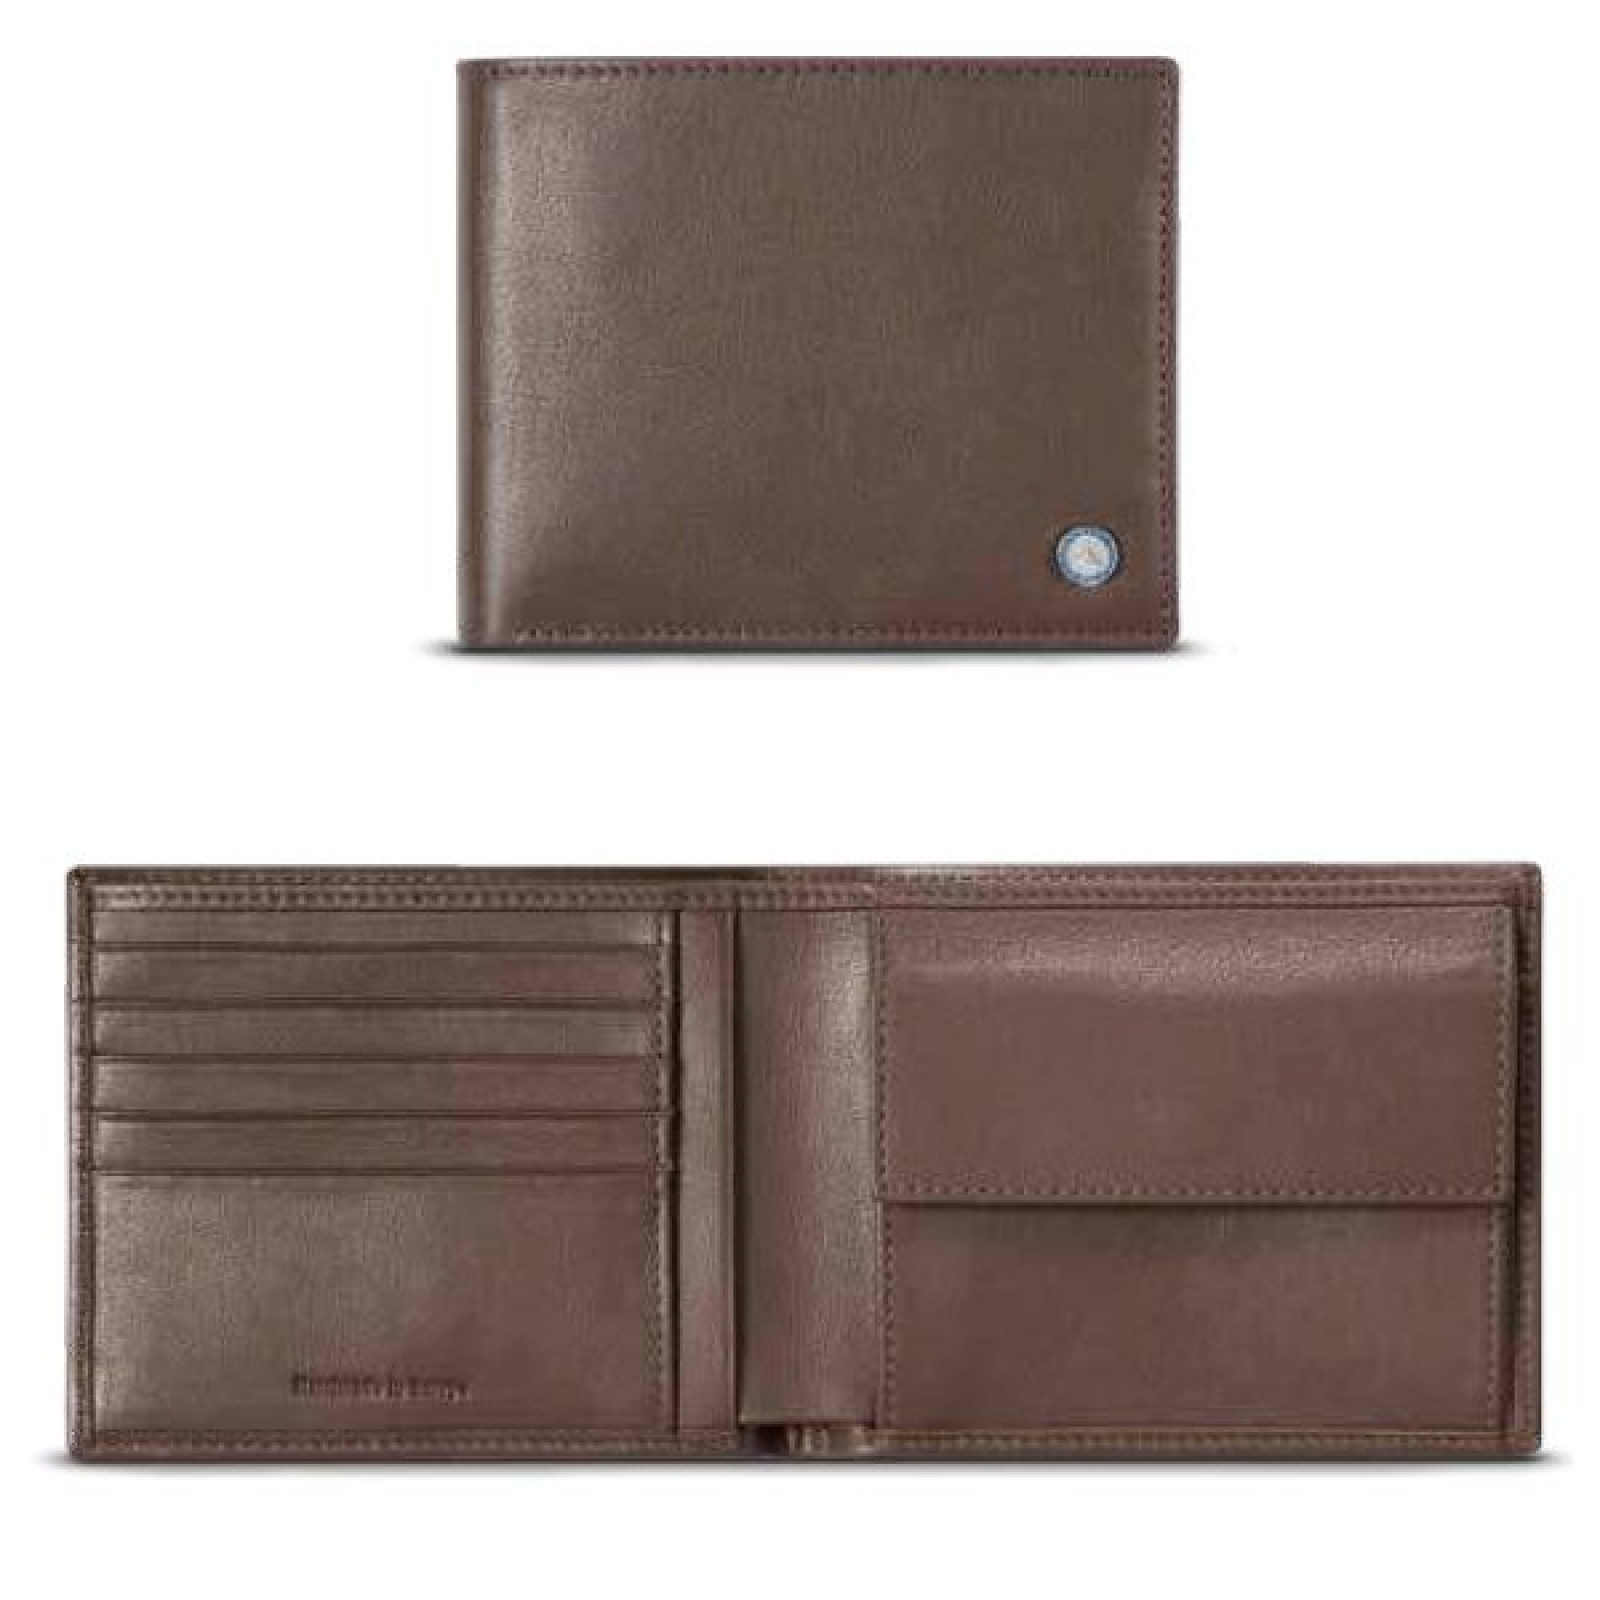 Mercedes benz official leather classic wallet brown for Mercedes benz wallet